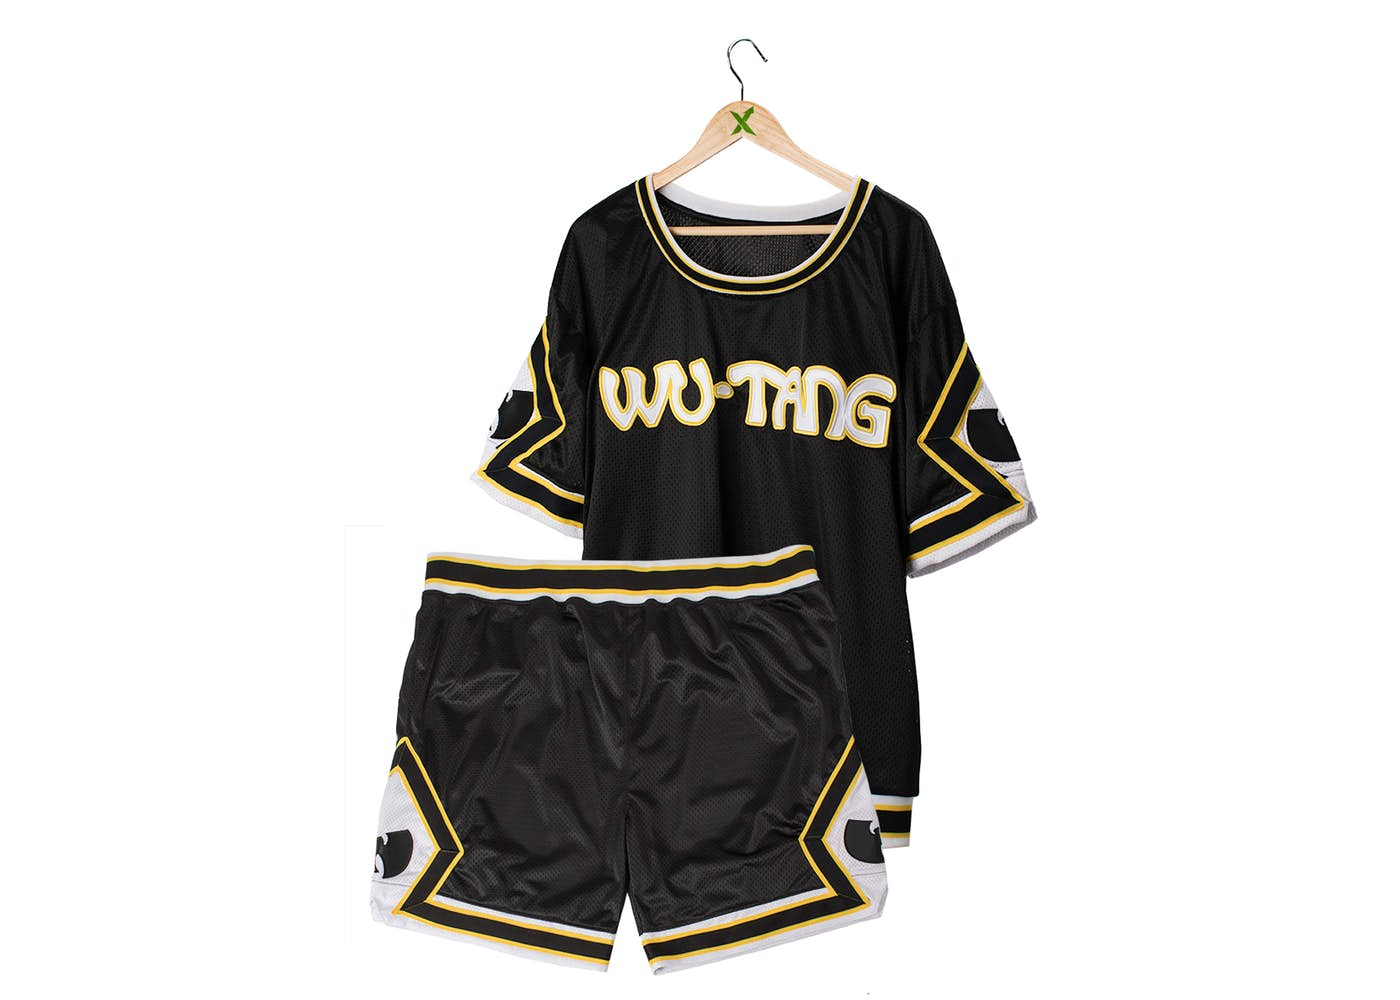 bc718081 stockx wu-tang foundation CREAM basketball jersey - WearTesters